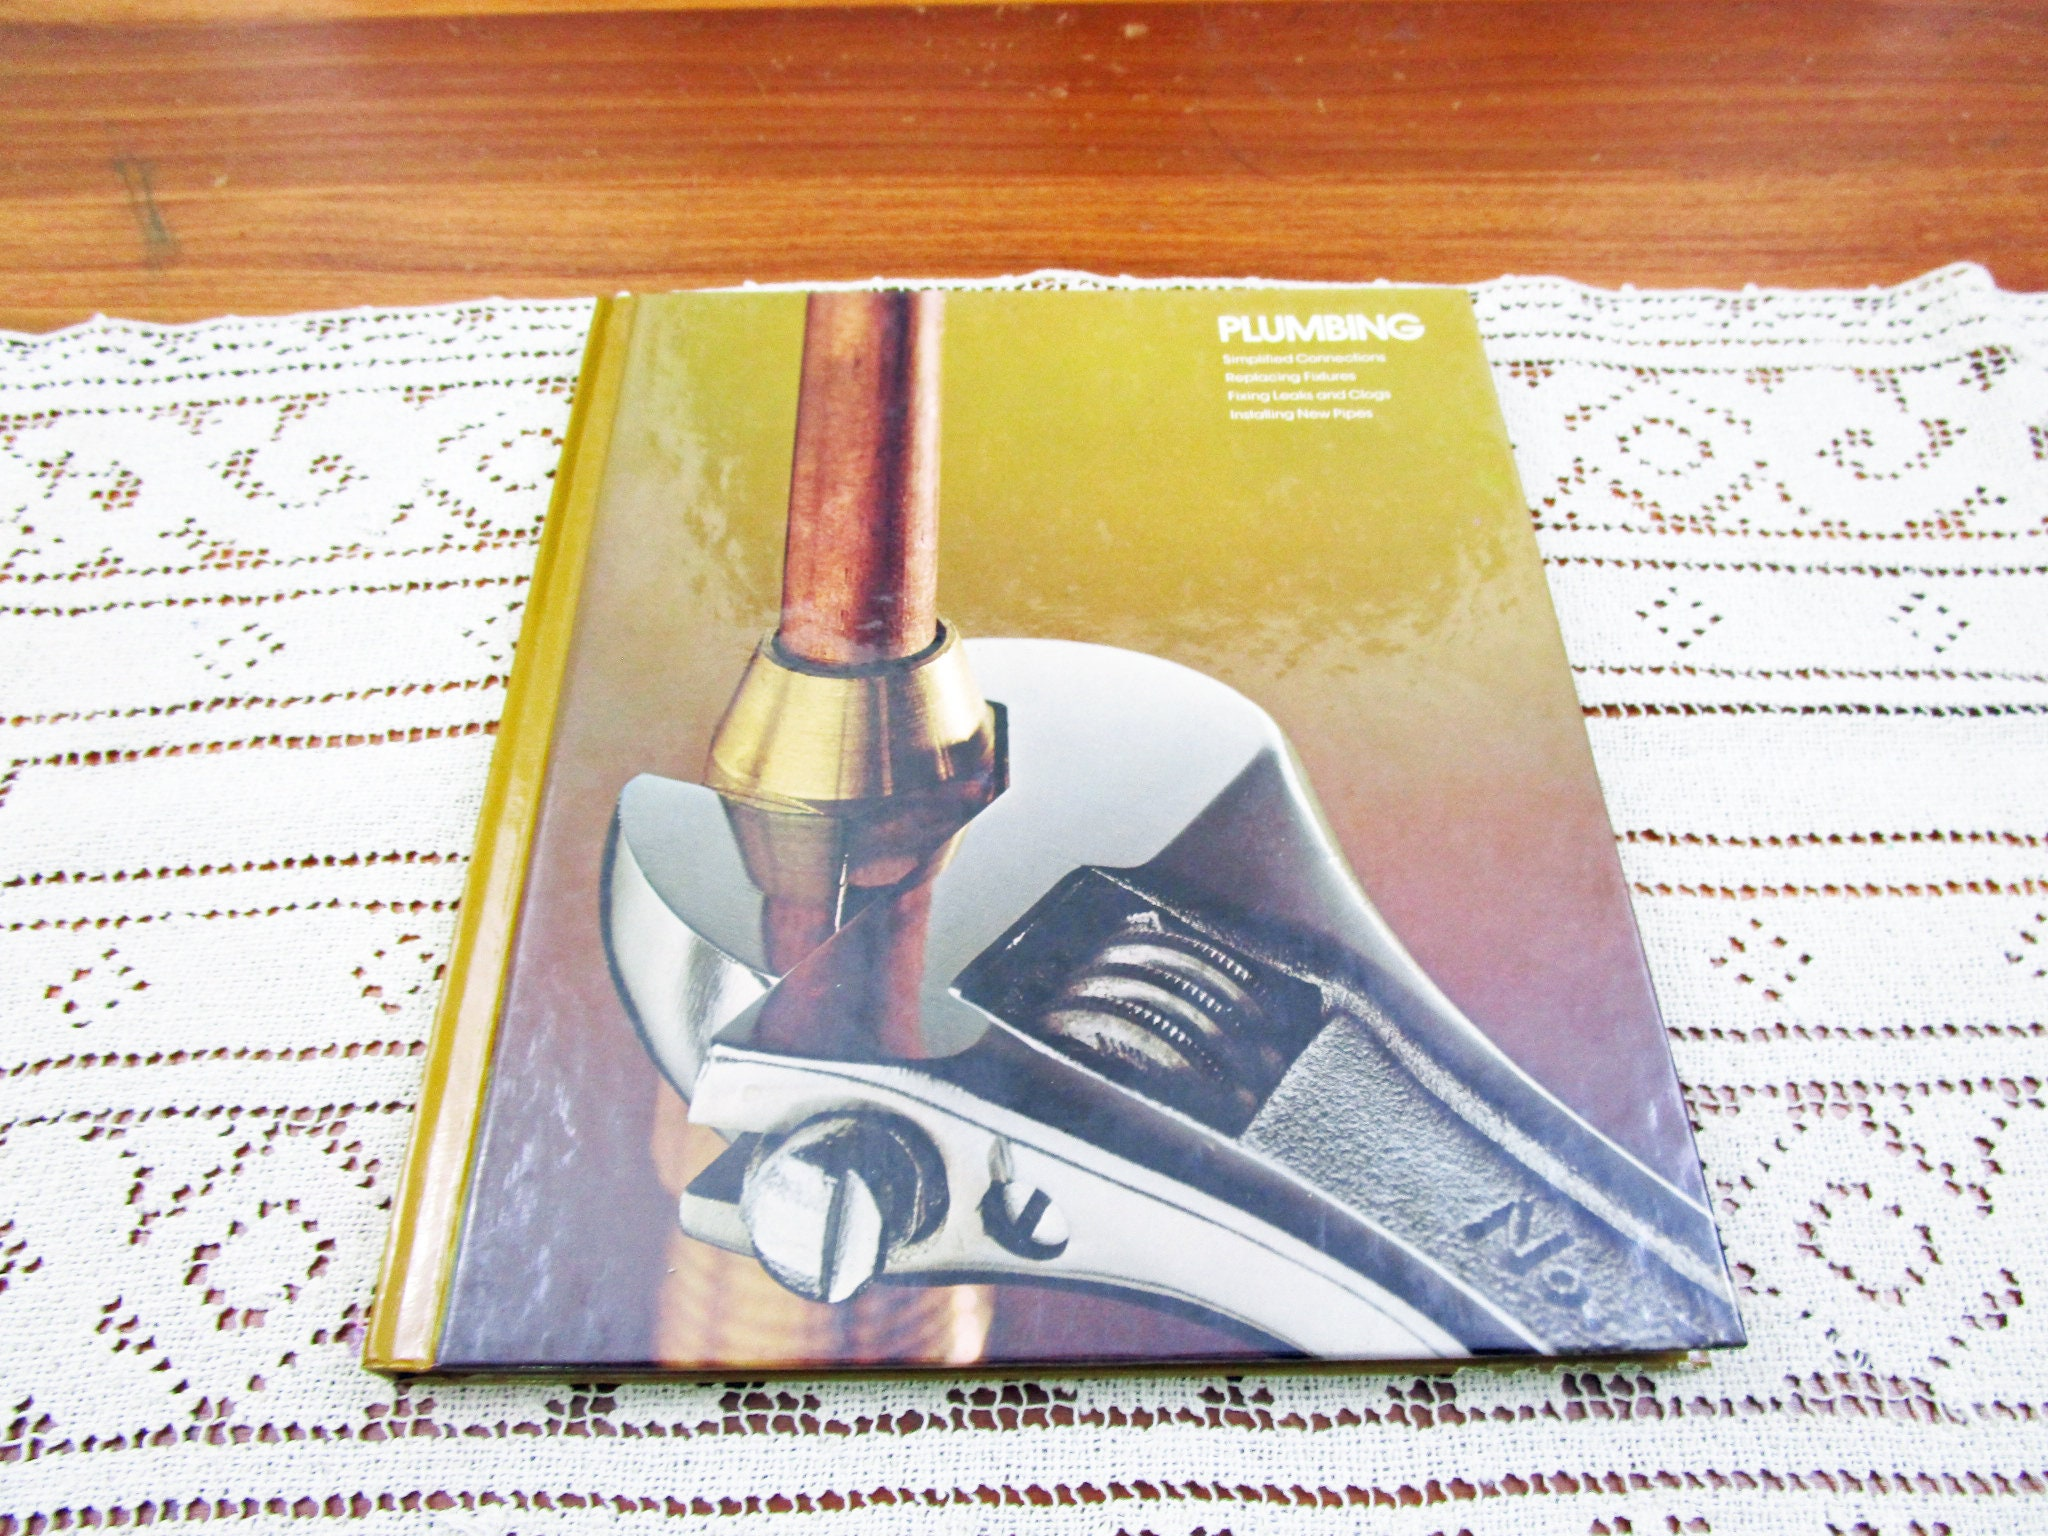 Vintage Plumbing Home Repair And Improvement By Time Life Books Hardcover Book Projects How To Repair Remolding